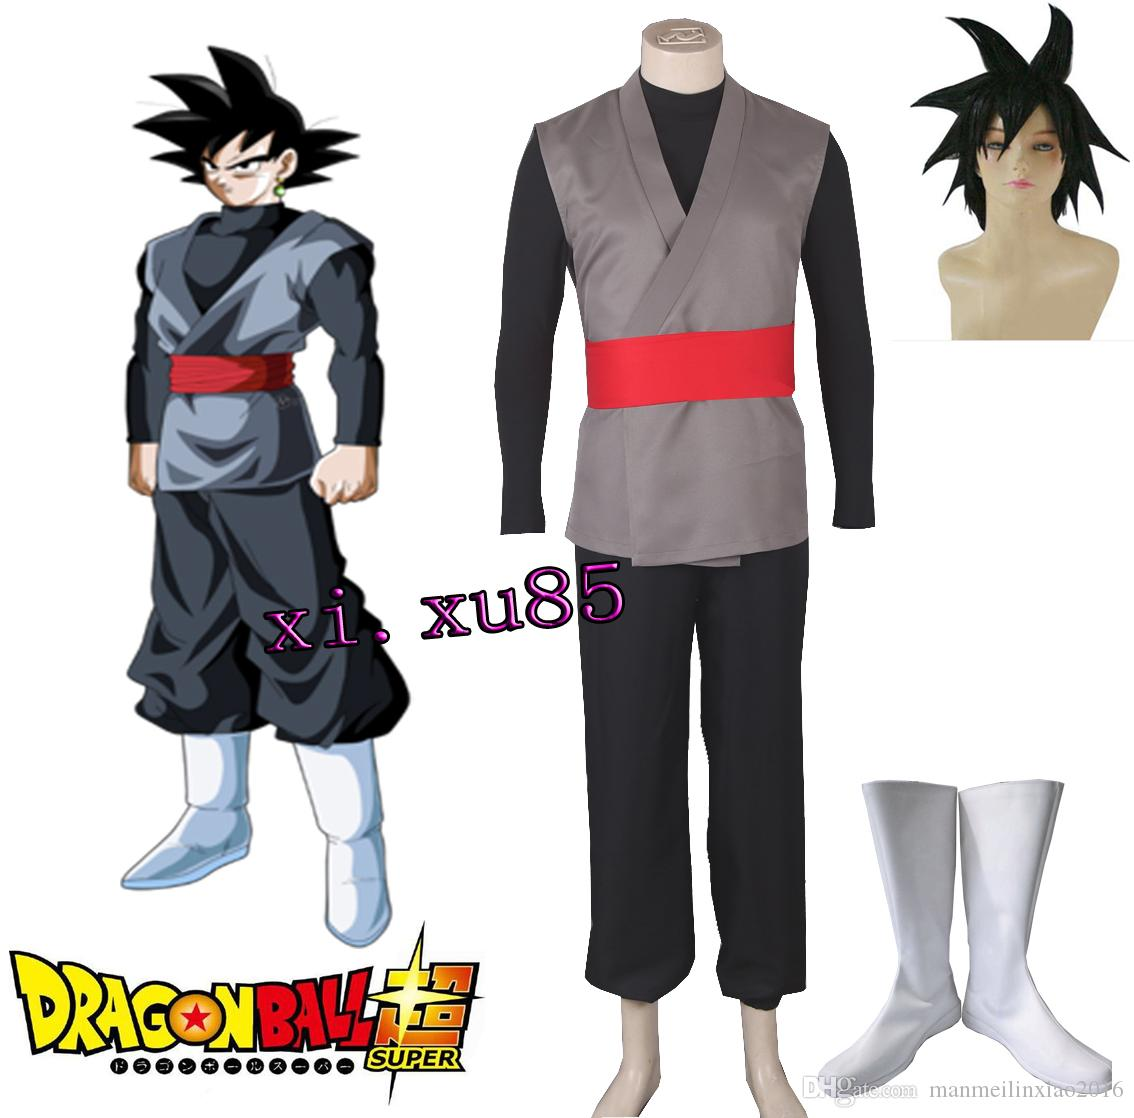 HOT Anime COS Dragon Ball Super Son Goku Black Zamasu Dragonball Z Cosplay  Costume Outfit Suit Custom Made Any Size Unisex Fairy Halloween Costumes  Group ... a5afc79562